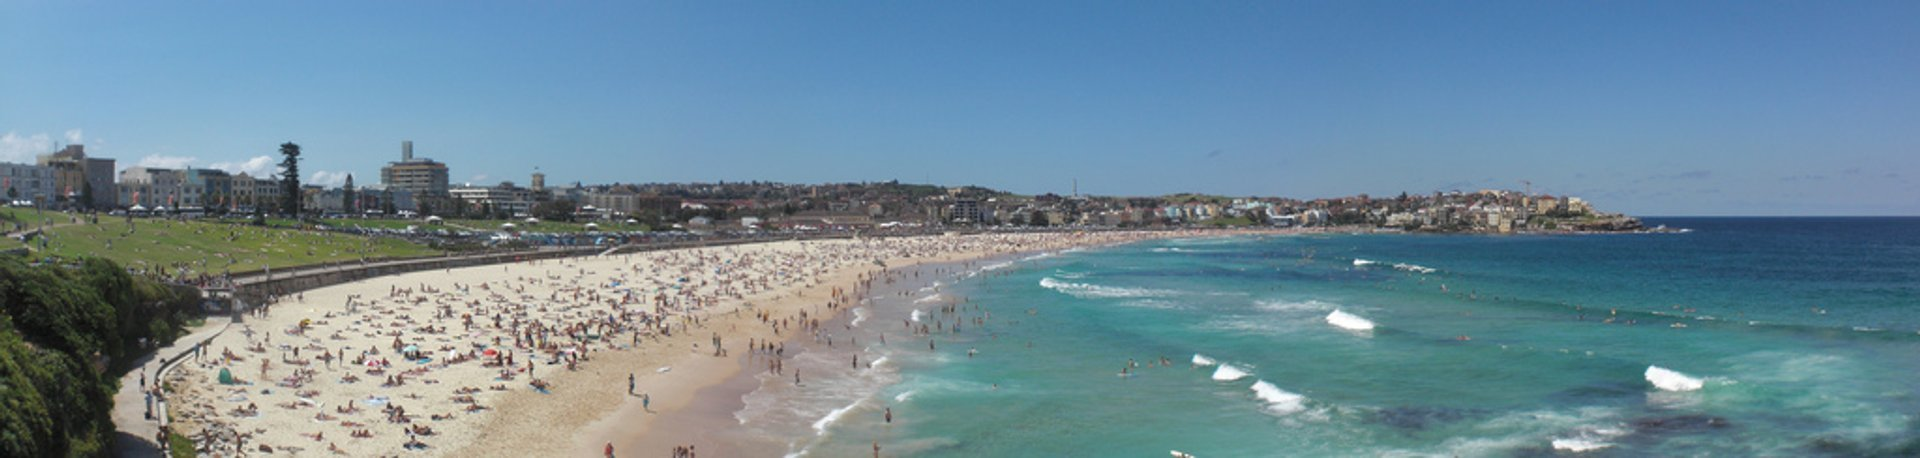 Bondi Beach panorama 2019